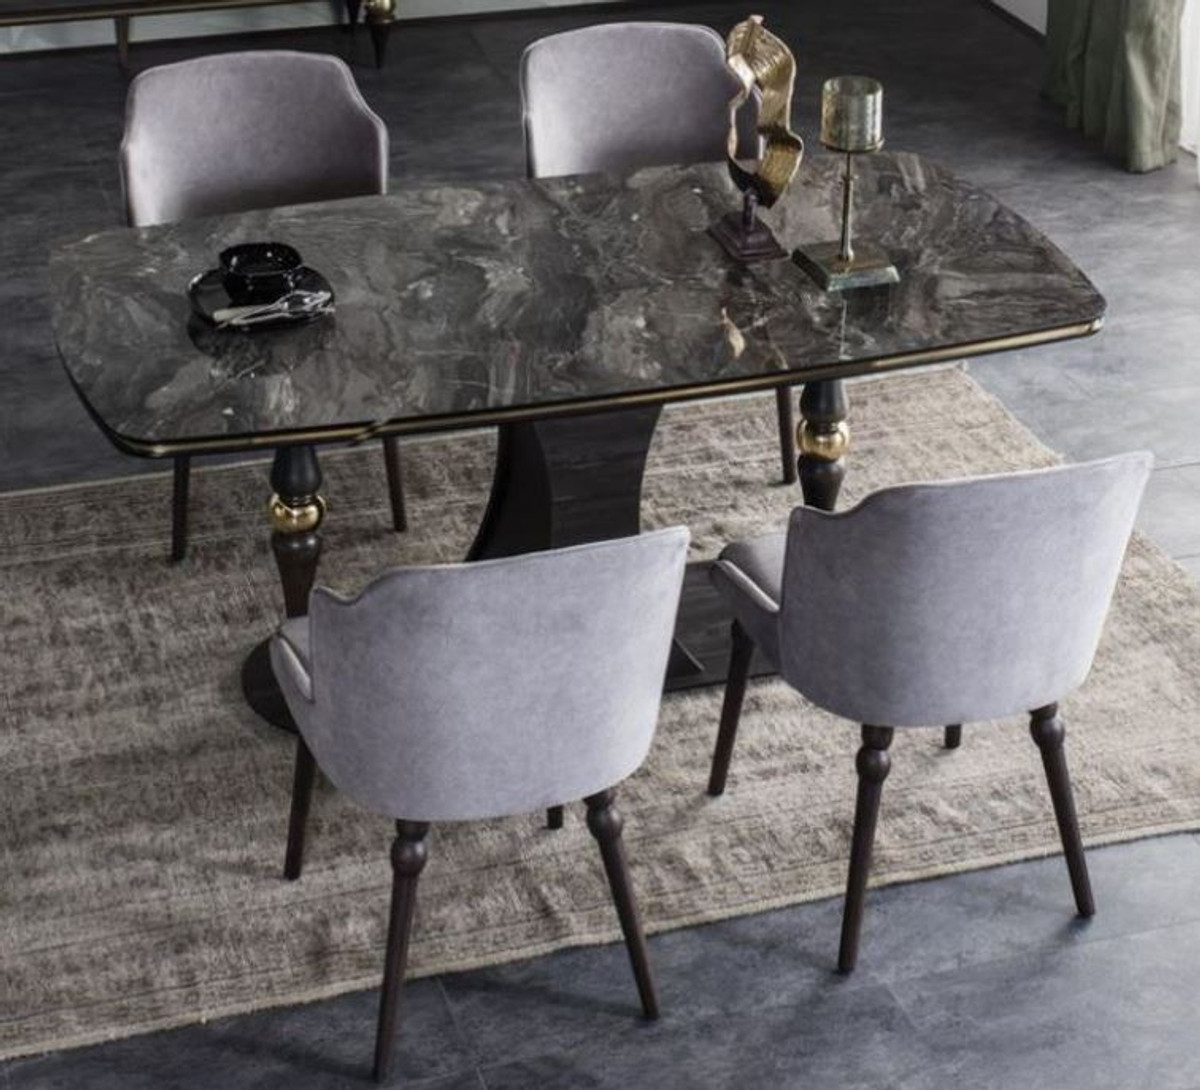 Casa Padrino Luxury Art Deco Dining Room Set Gray Black Brass 1 Dining Room Table With Glass Top In Marble Look 4 Dining Chairs Art Deco Dining Room Furniture